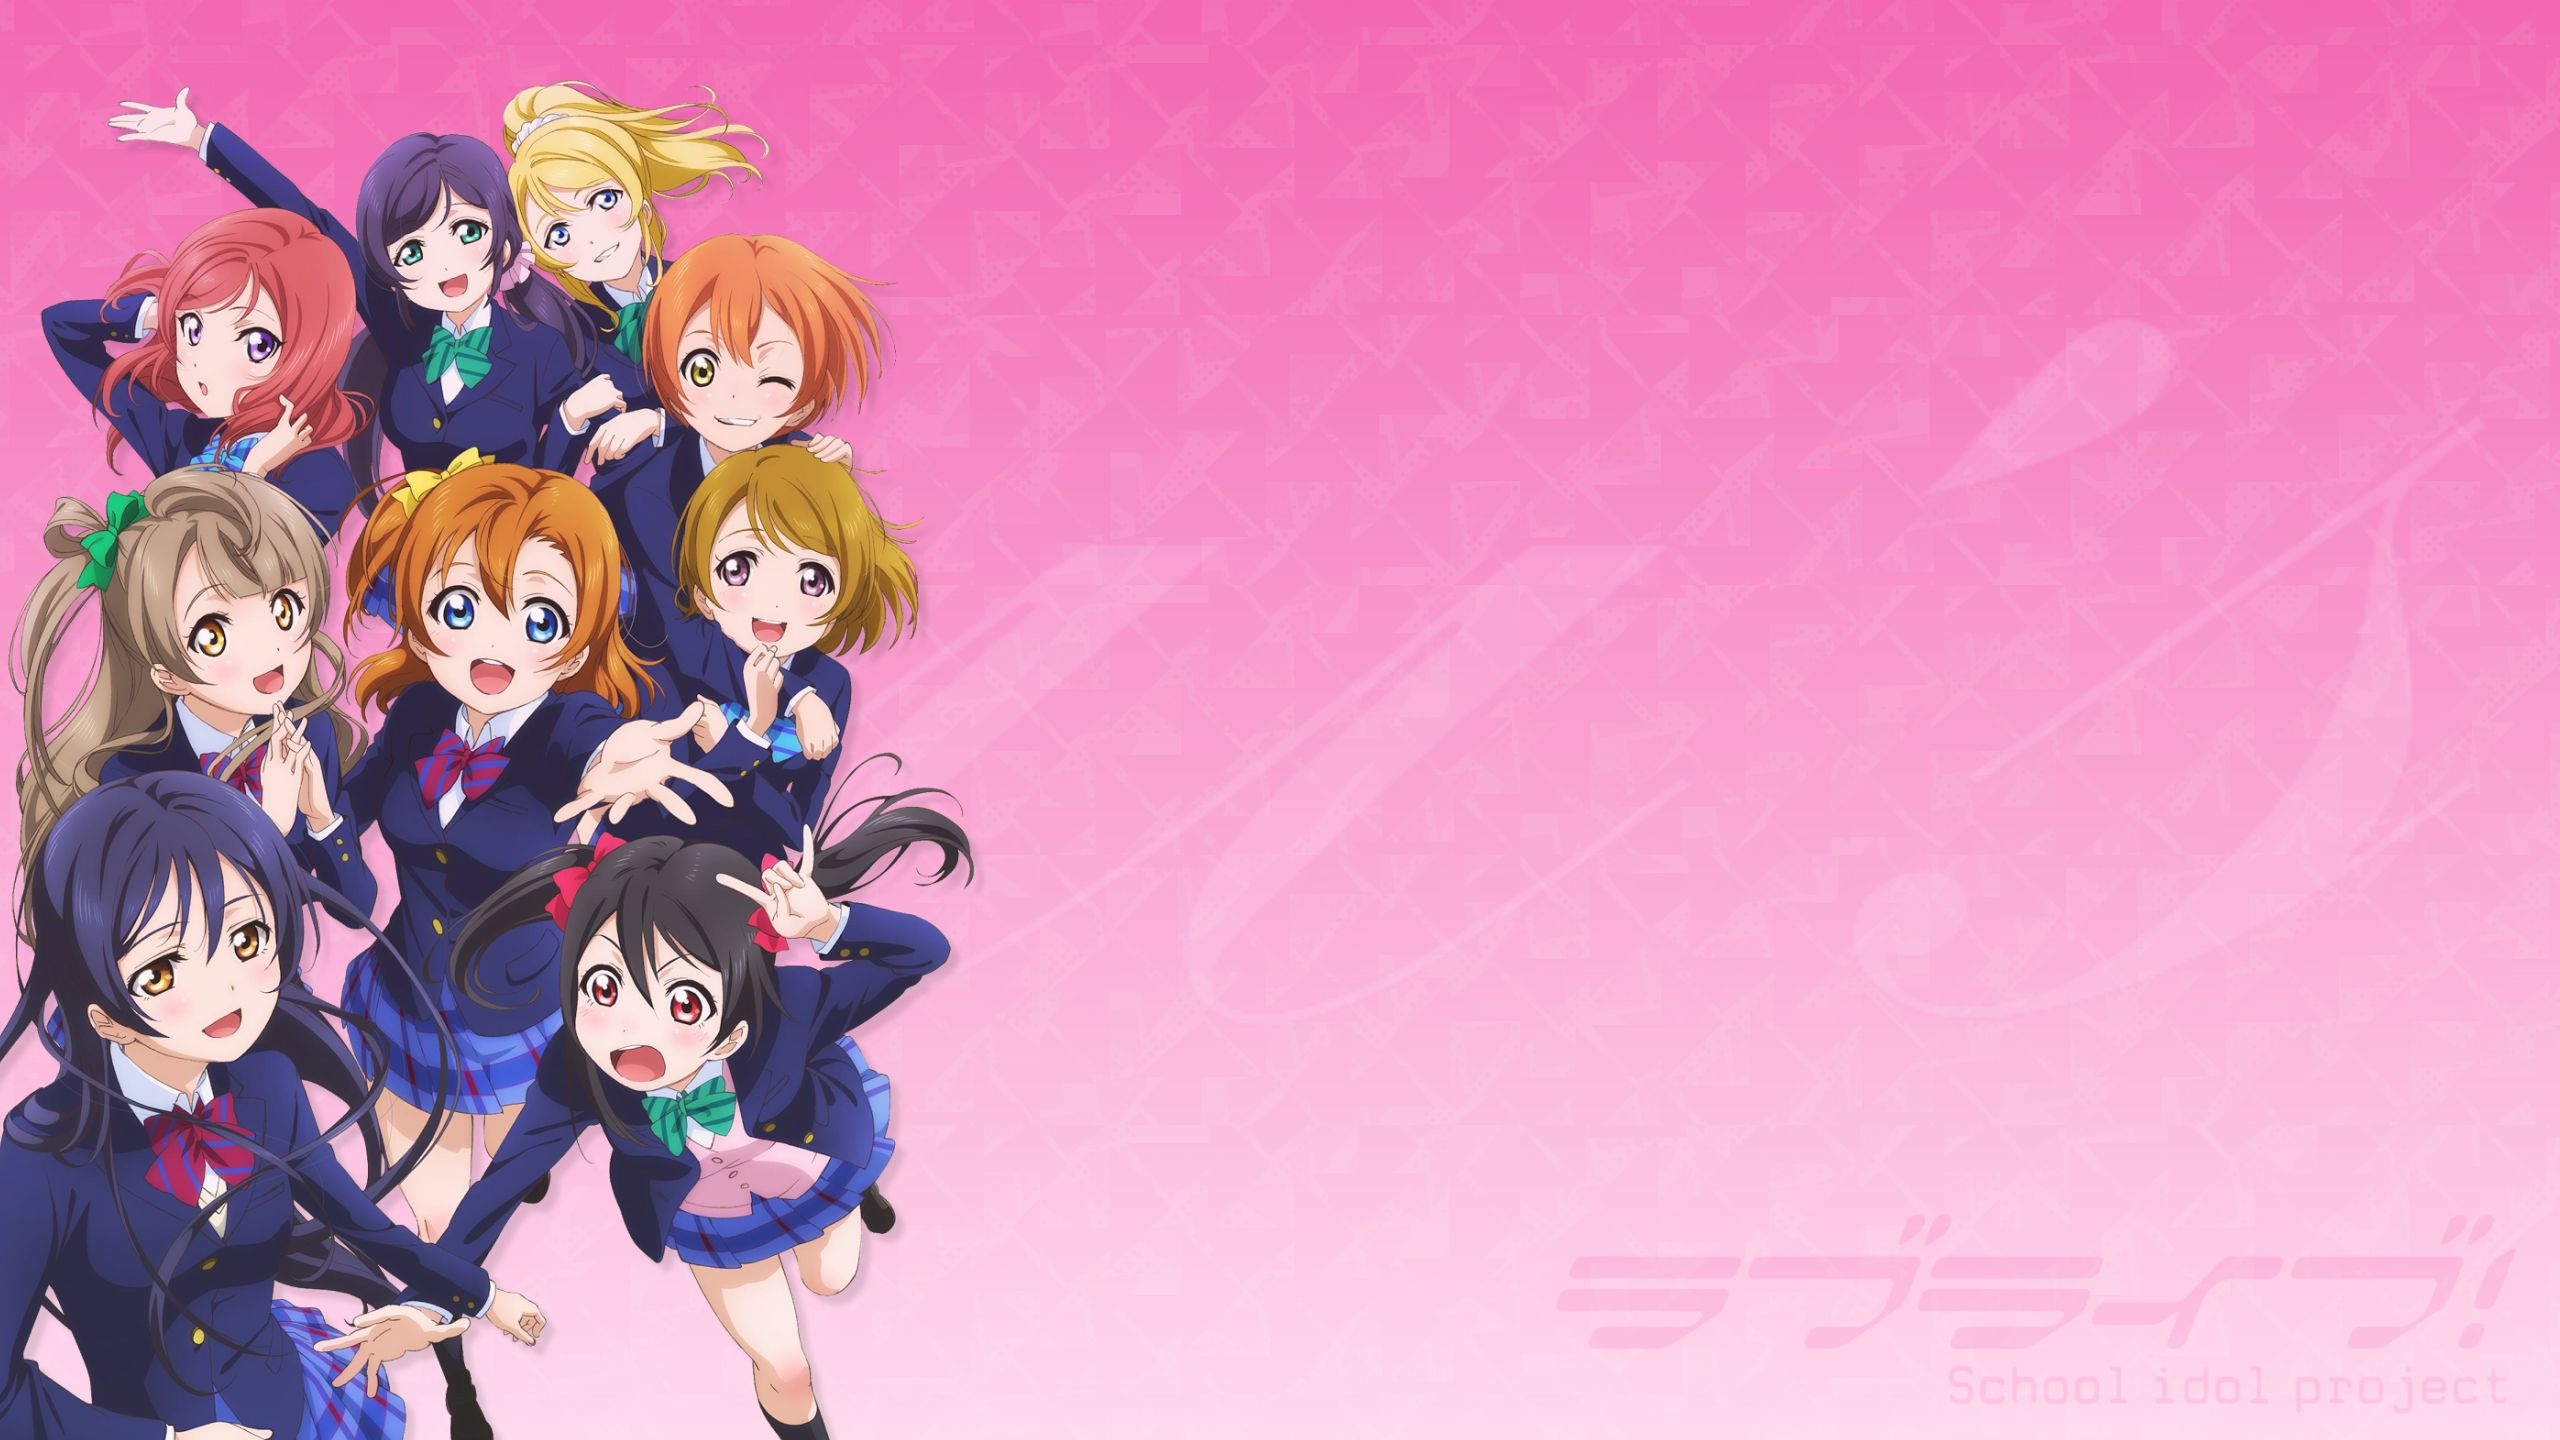 tree of love live wallpaper android apps on google play 1920a—1080 love live wallpapers